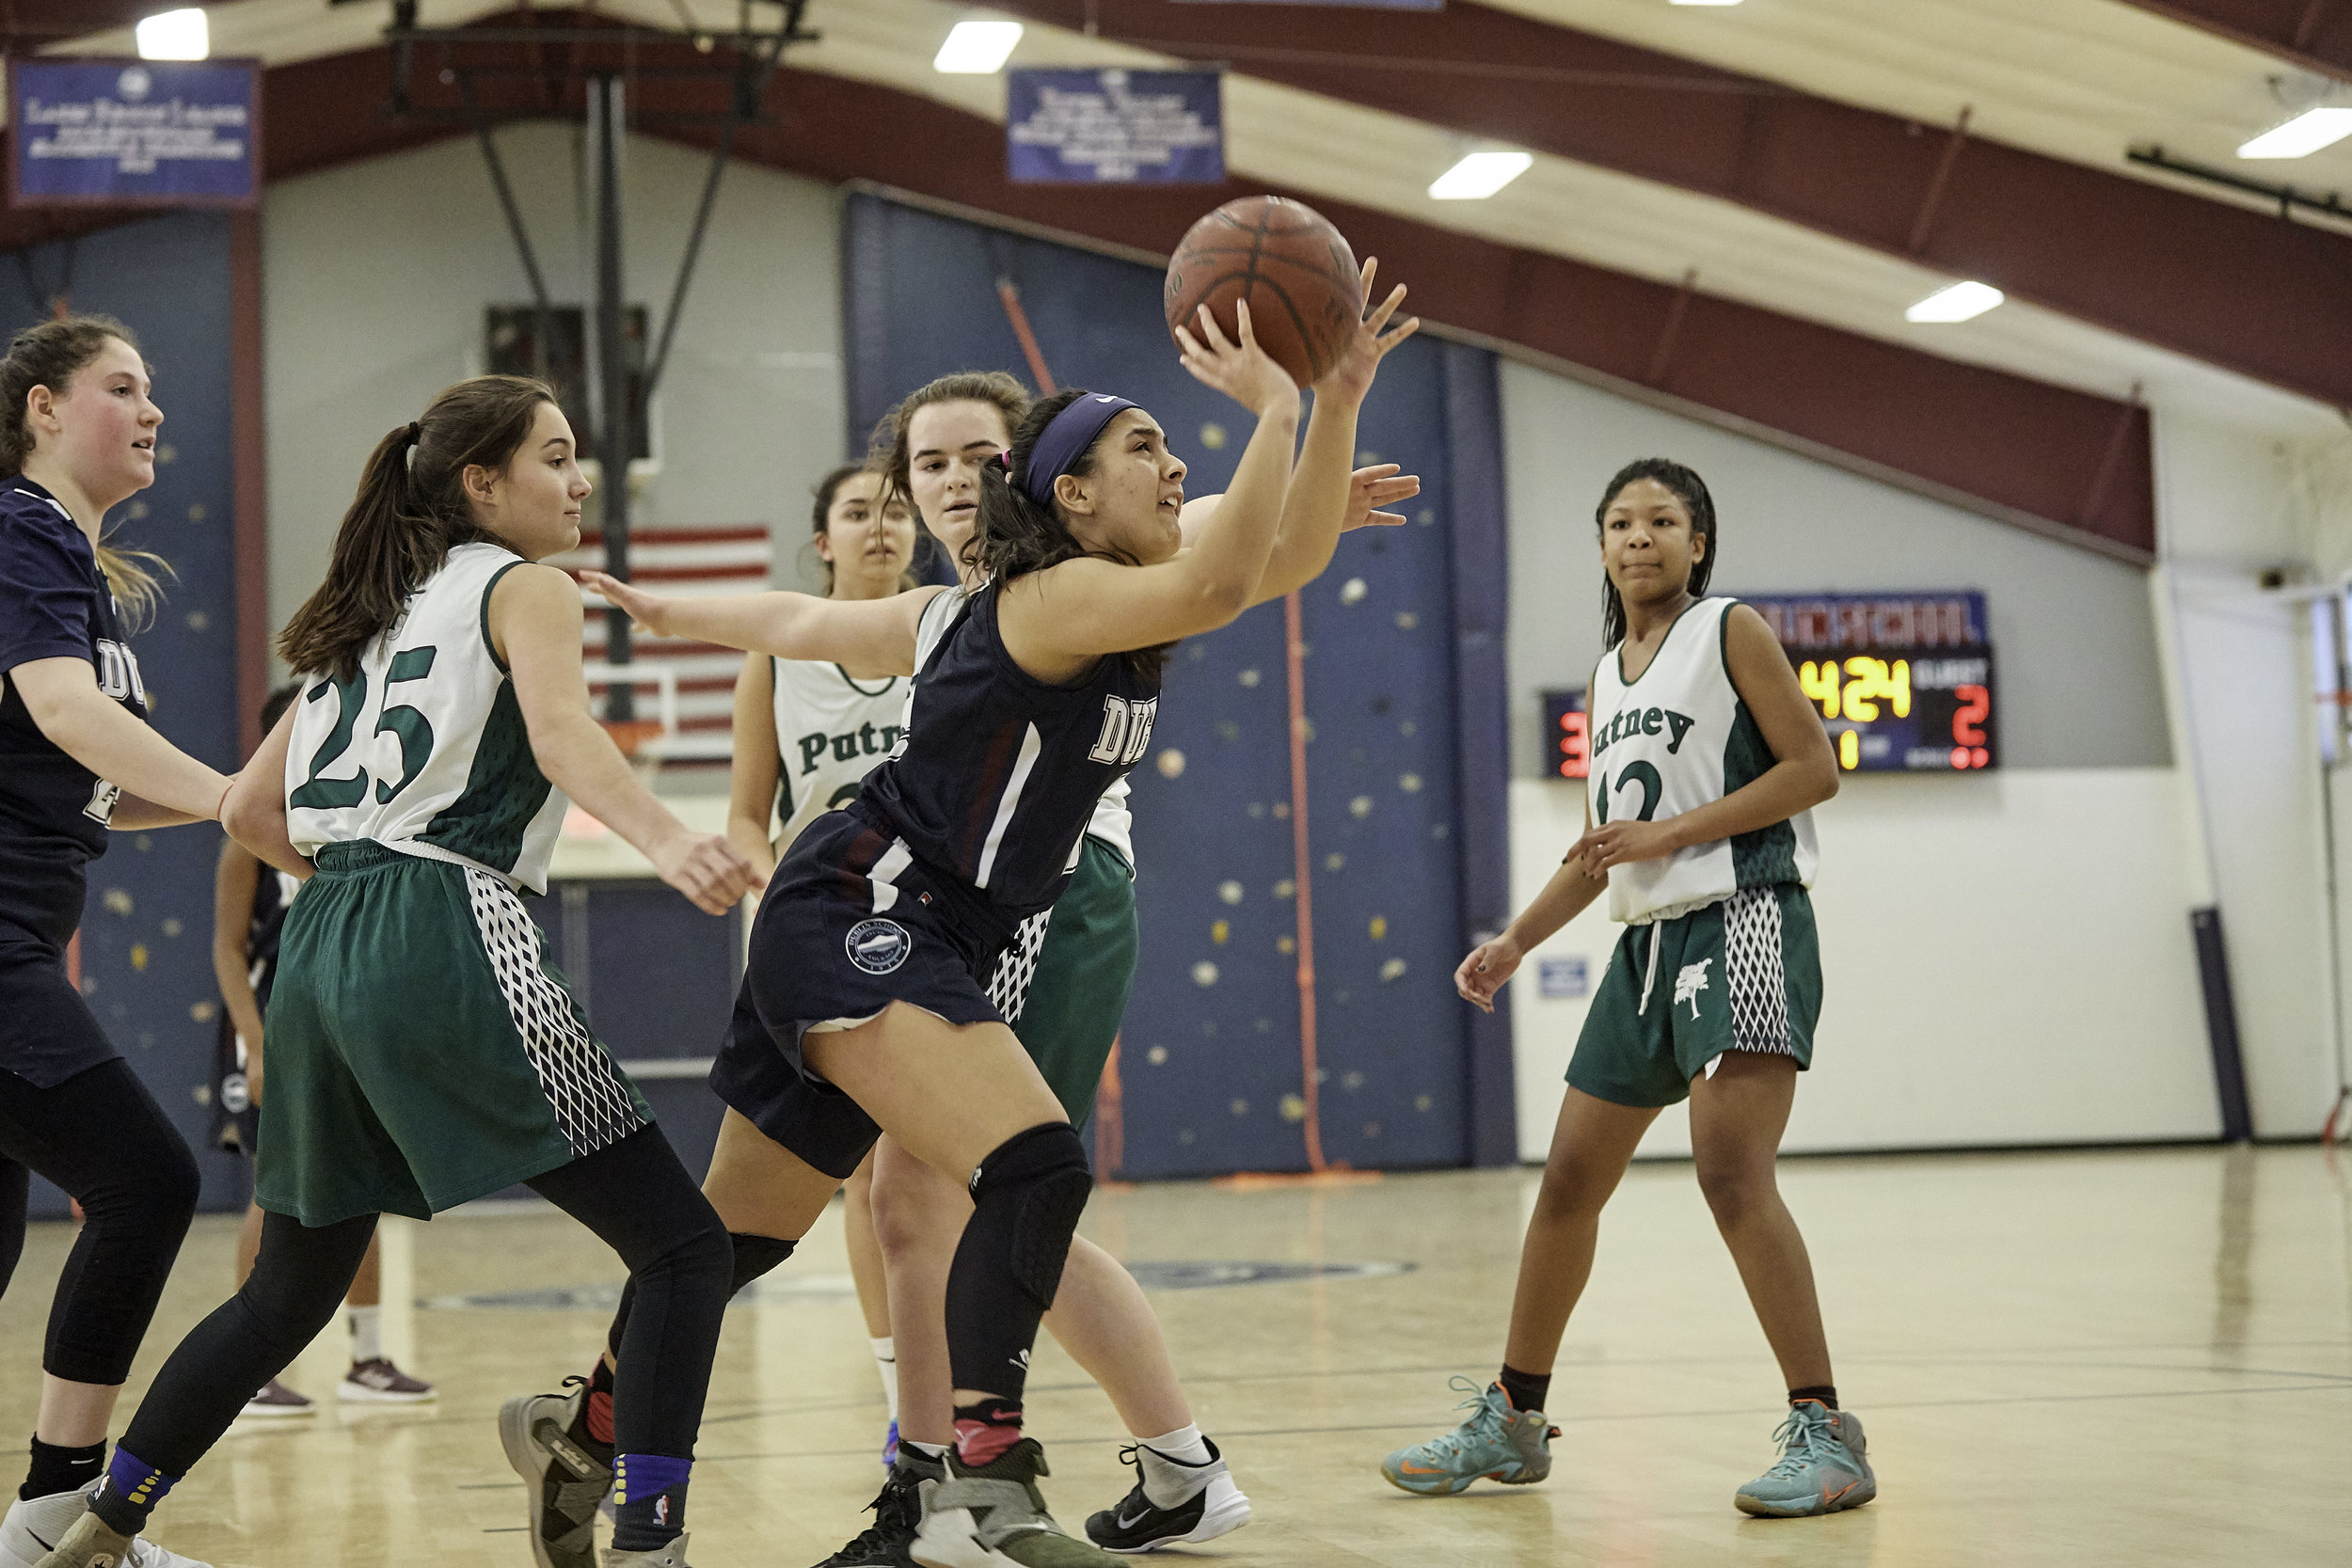 Basketball vs Putney School, February 9, 2019 - 167266.jpg